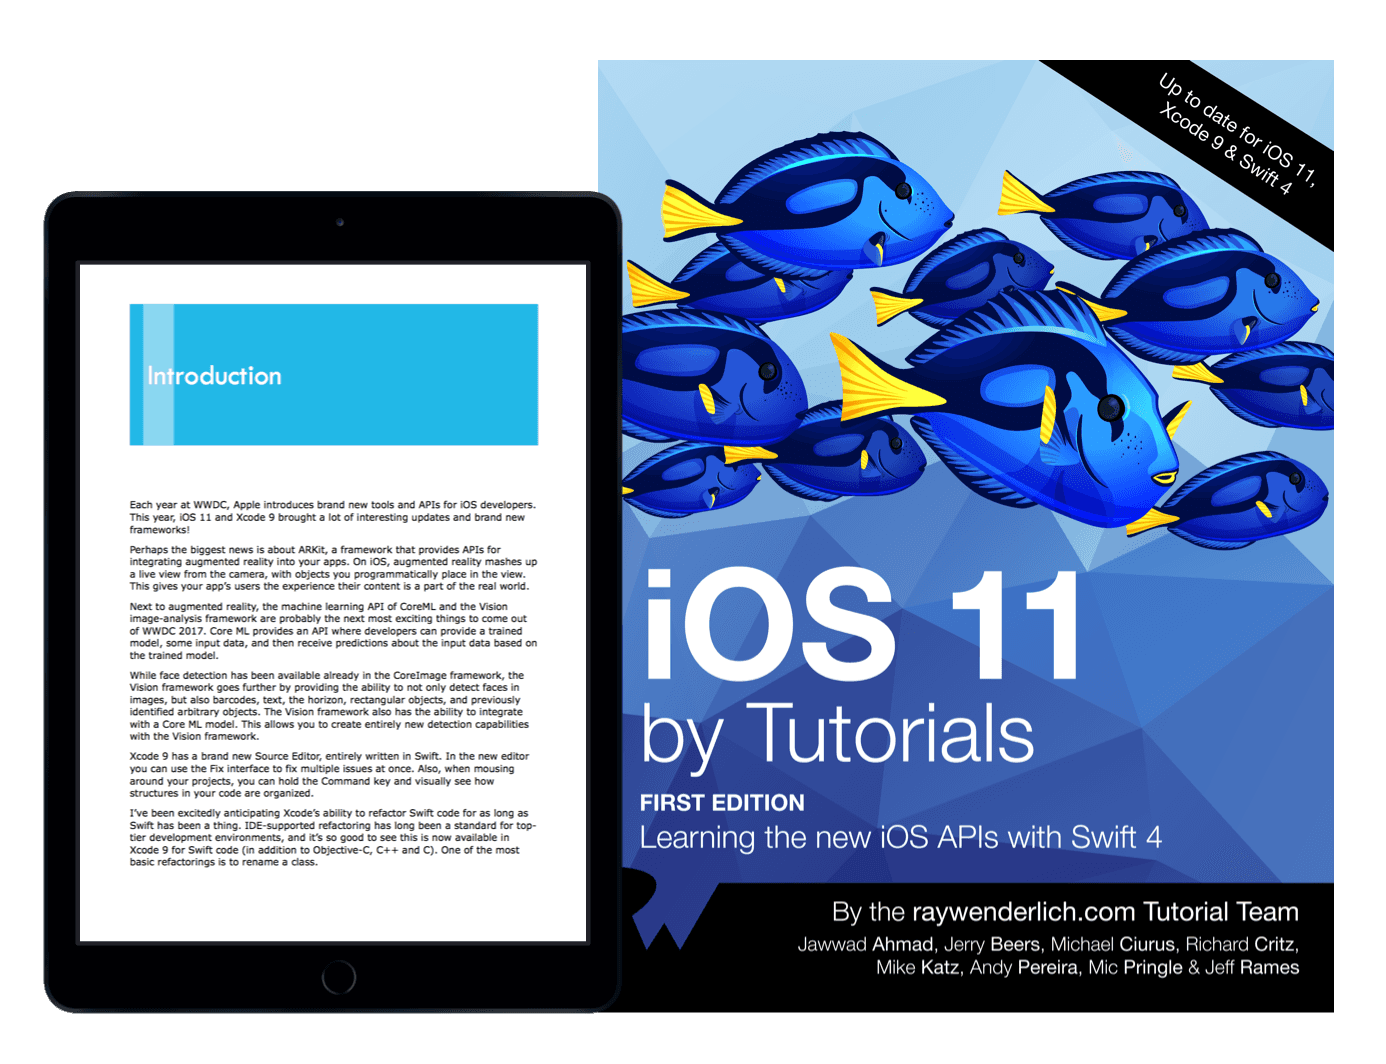 iOS 11 by tutorials book cover